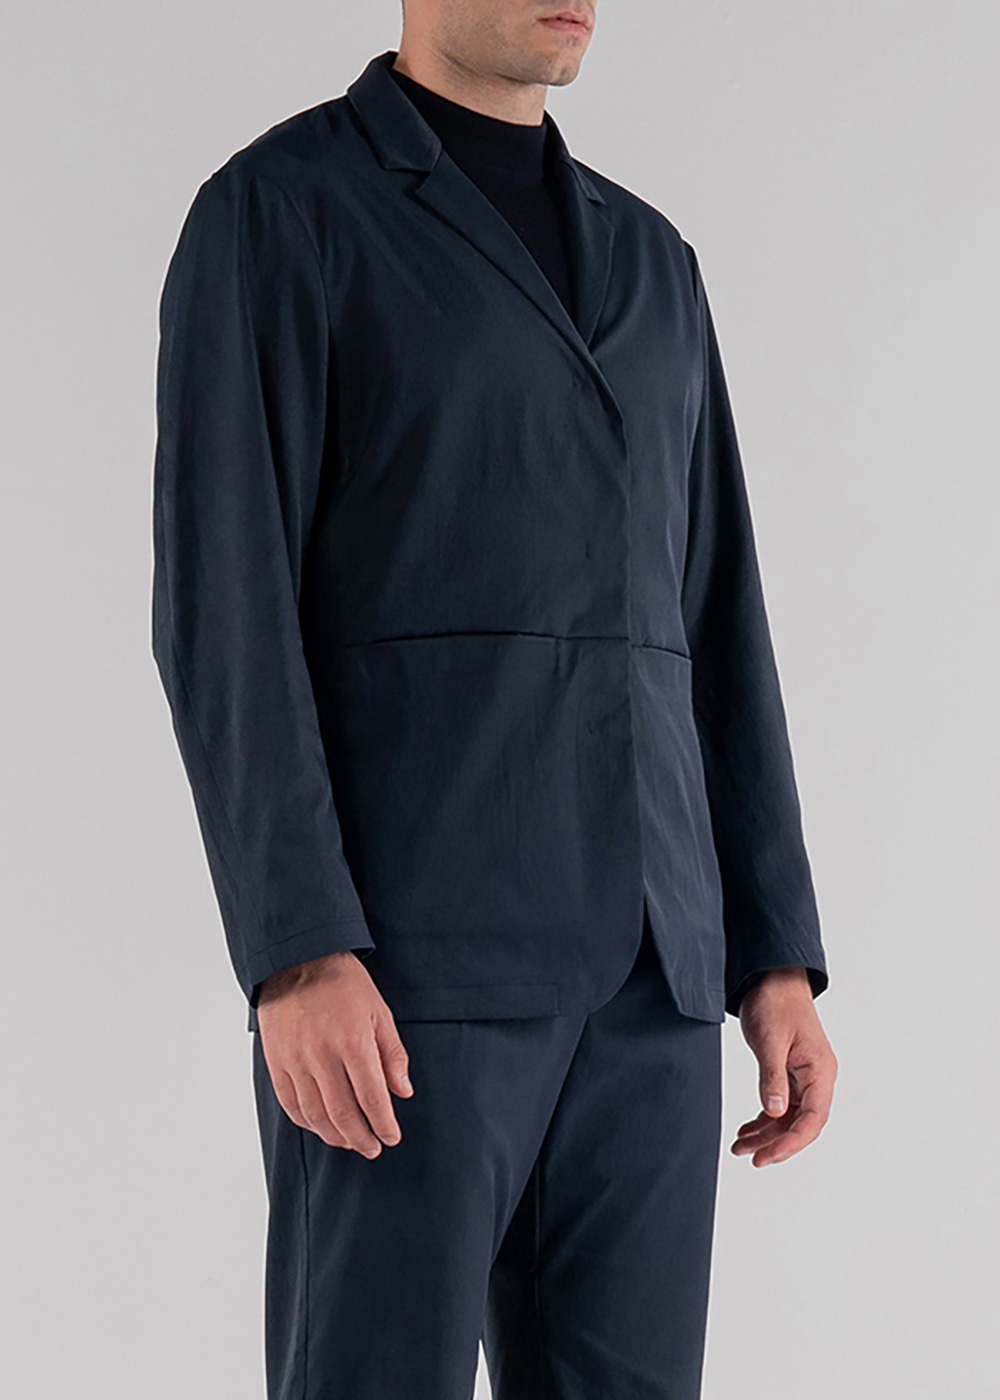 TECHNICAL BLAZER #1 NV MEN'S